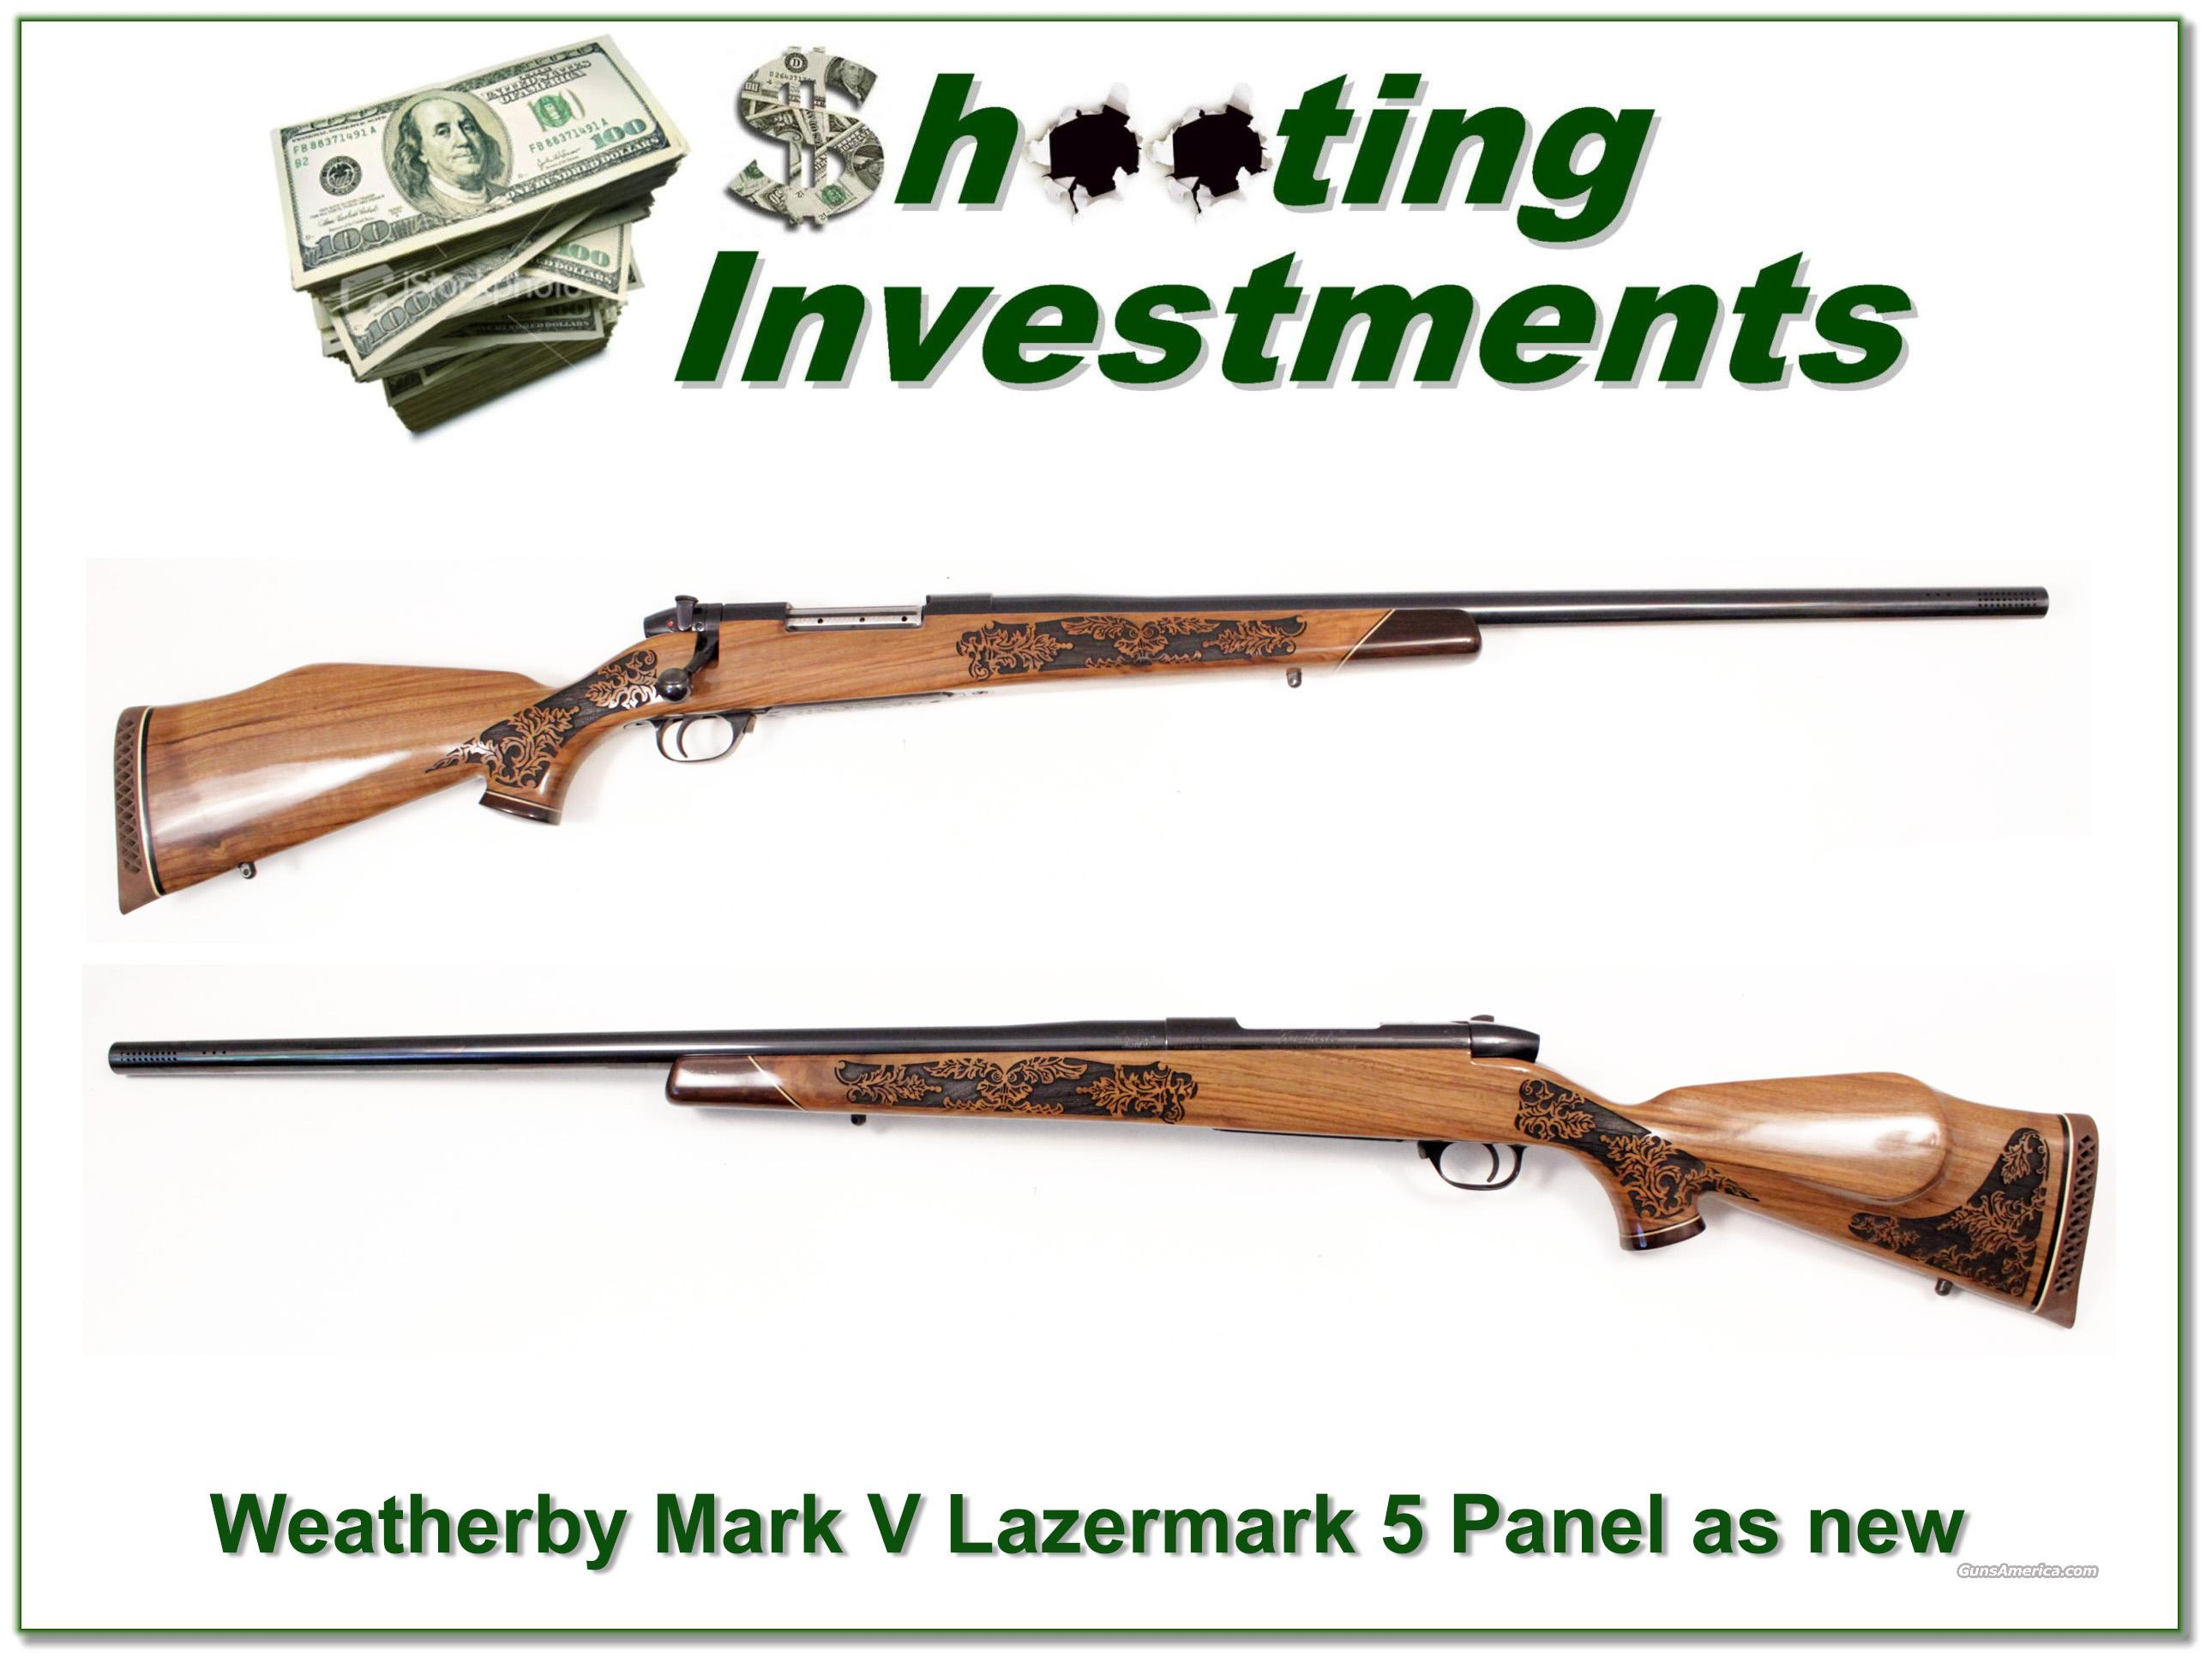 Weatherby Mark V 460 5 Panel Lazermark as new!  Guns > Rifles > Weatherby Rifles > Sporting